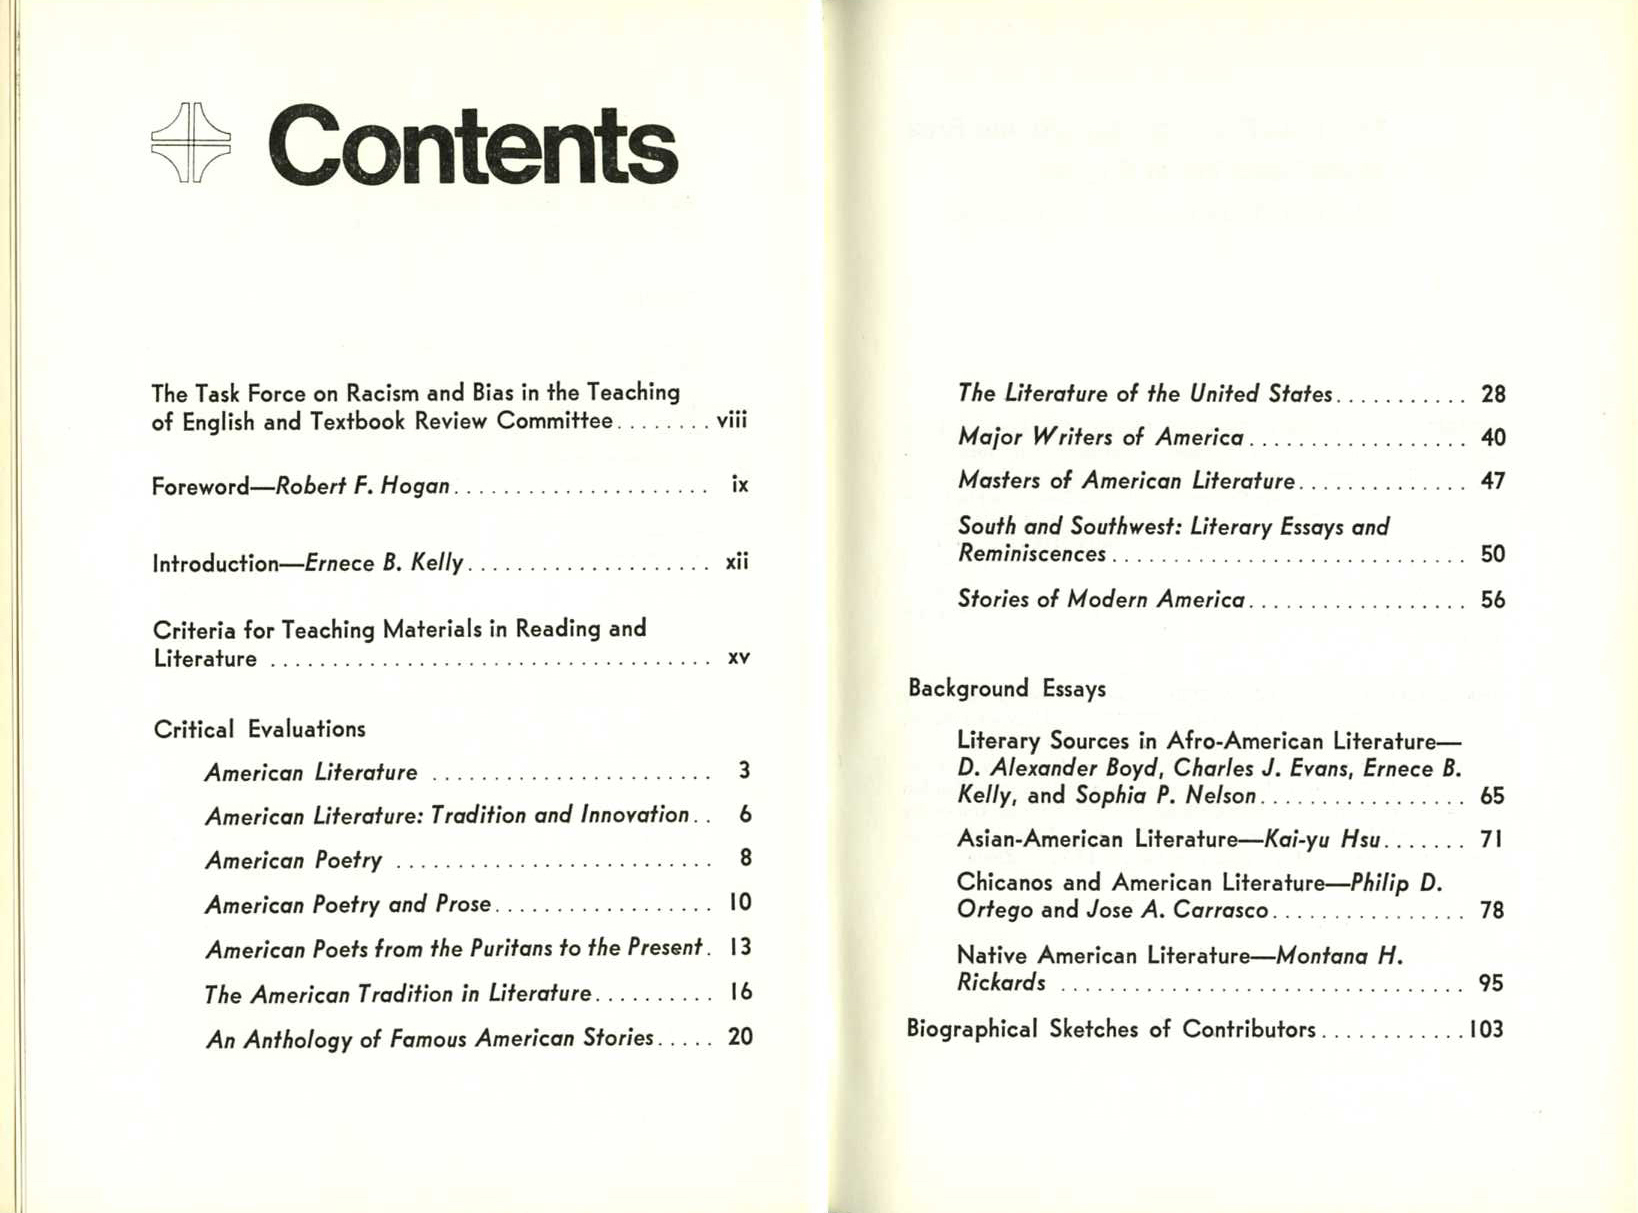 National council of teachers of english archives at the for 101 great american poems table of contents